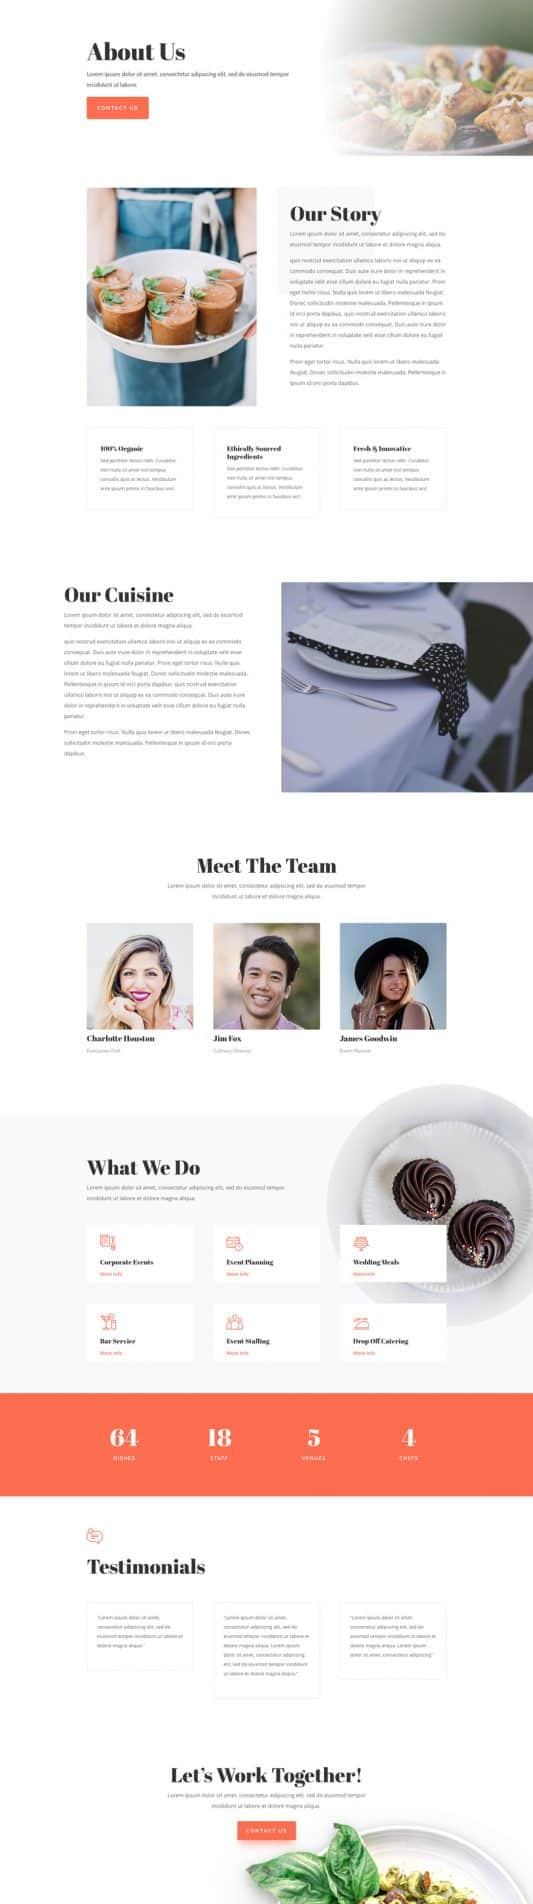 Food Catering Web Design 1